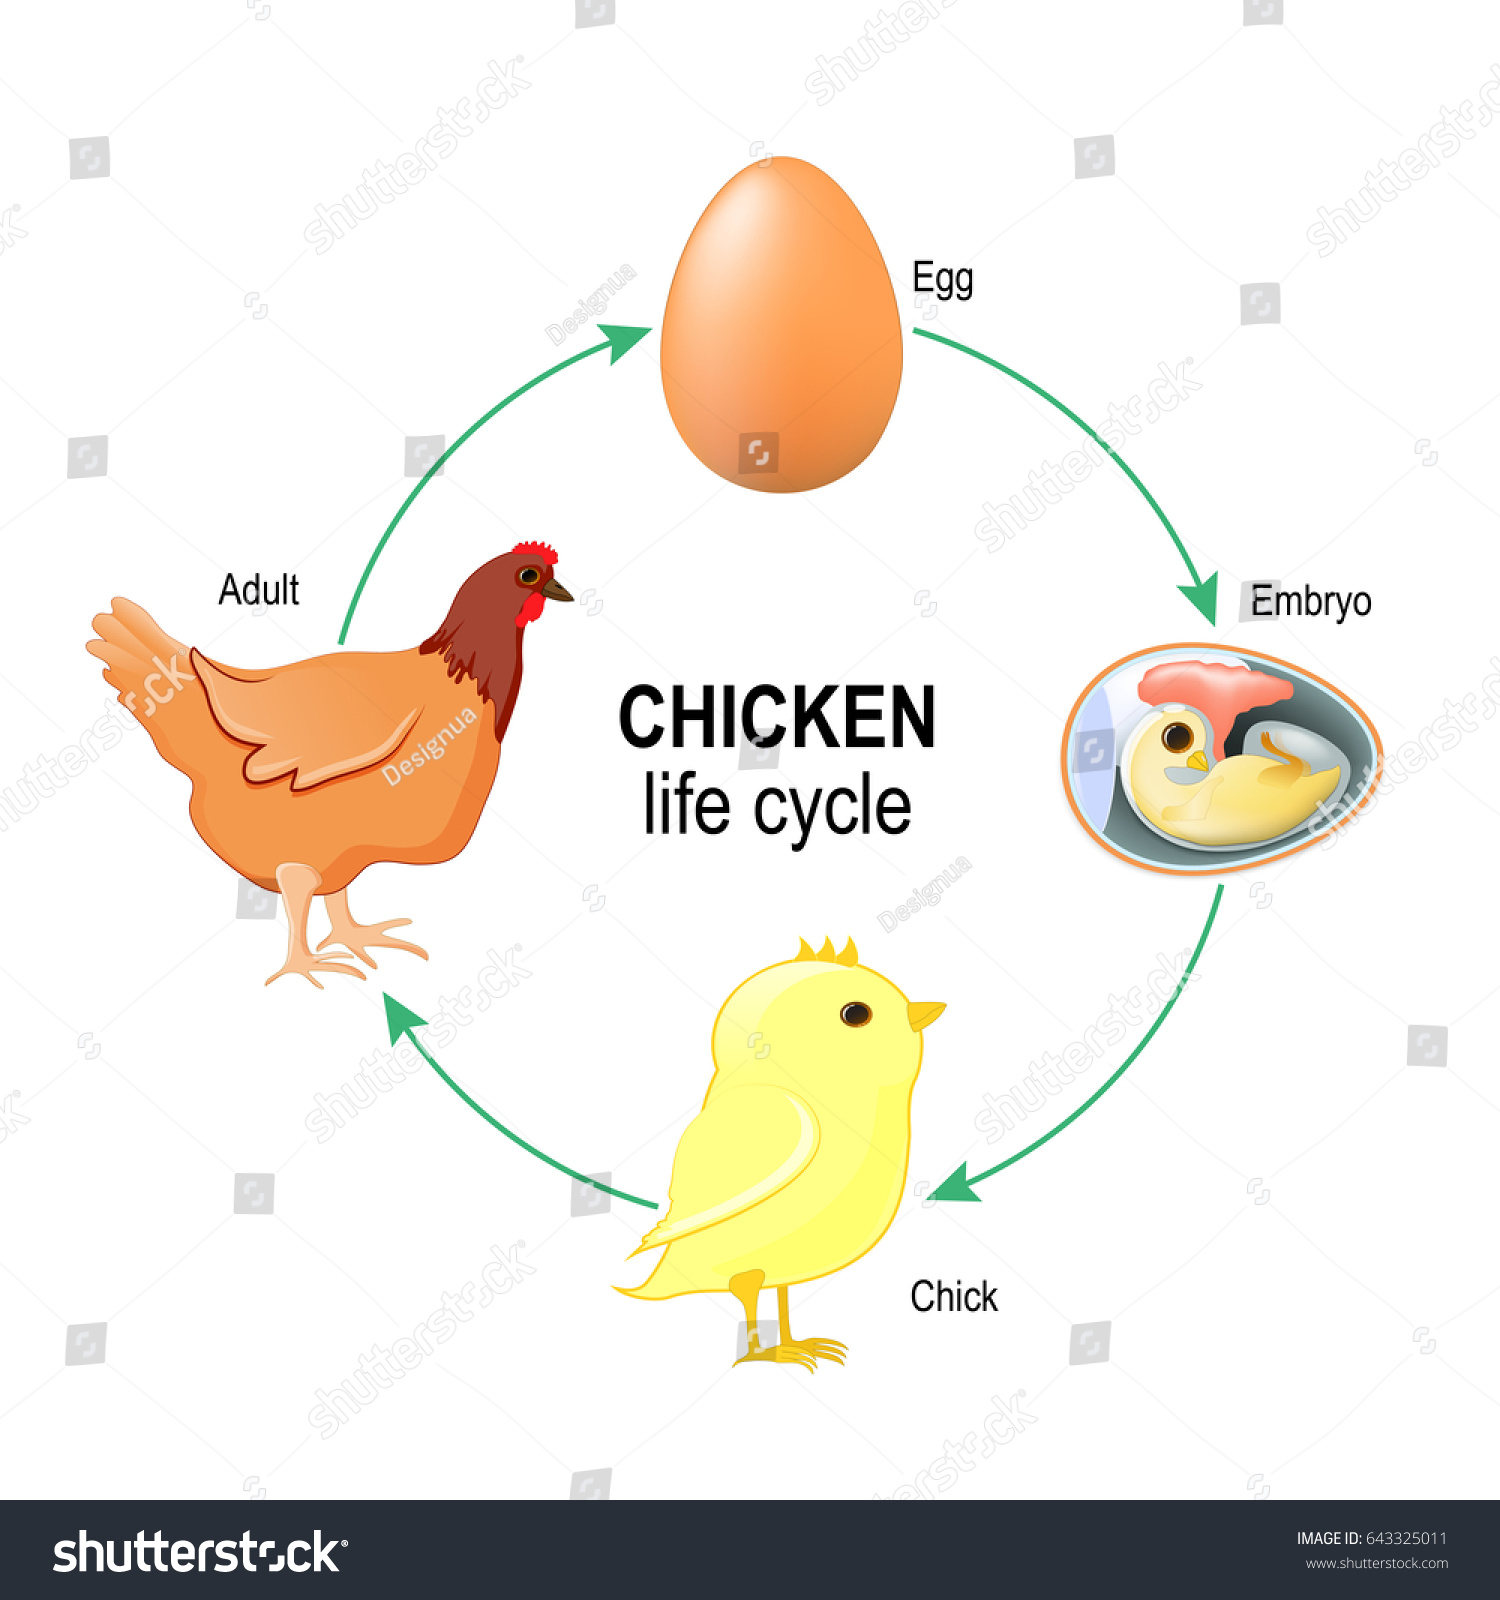 Chicken Life Cycle Egg Embryo Chick Stock Illustration 643325011 ...